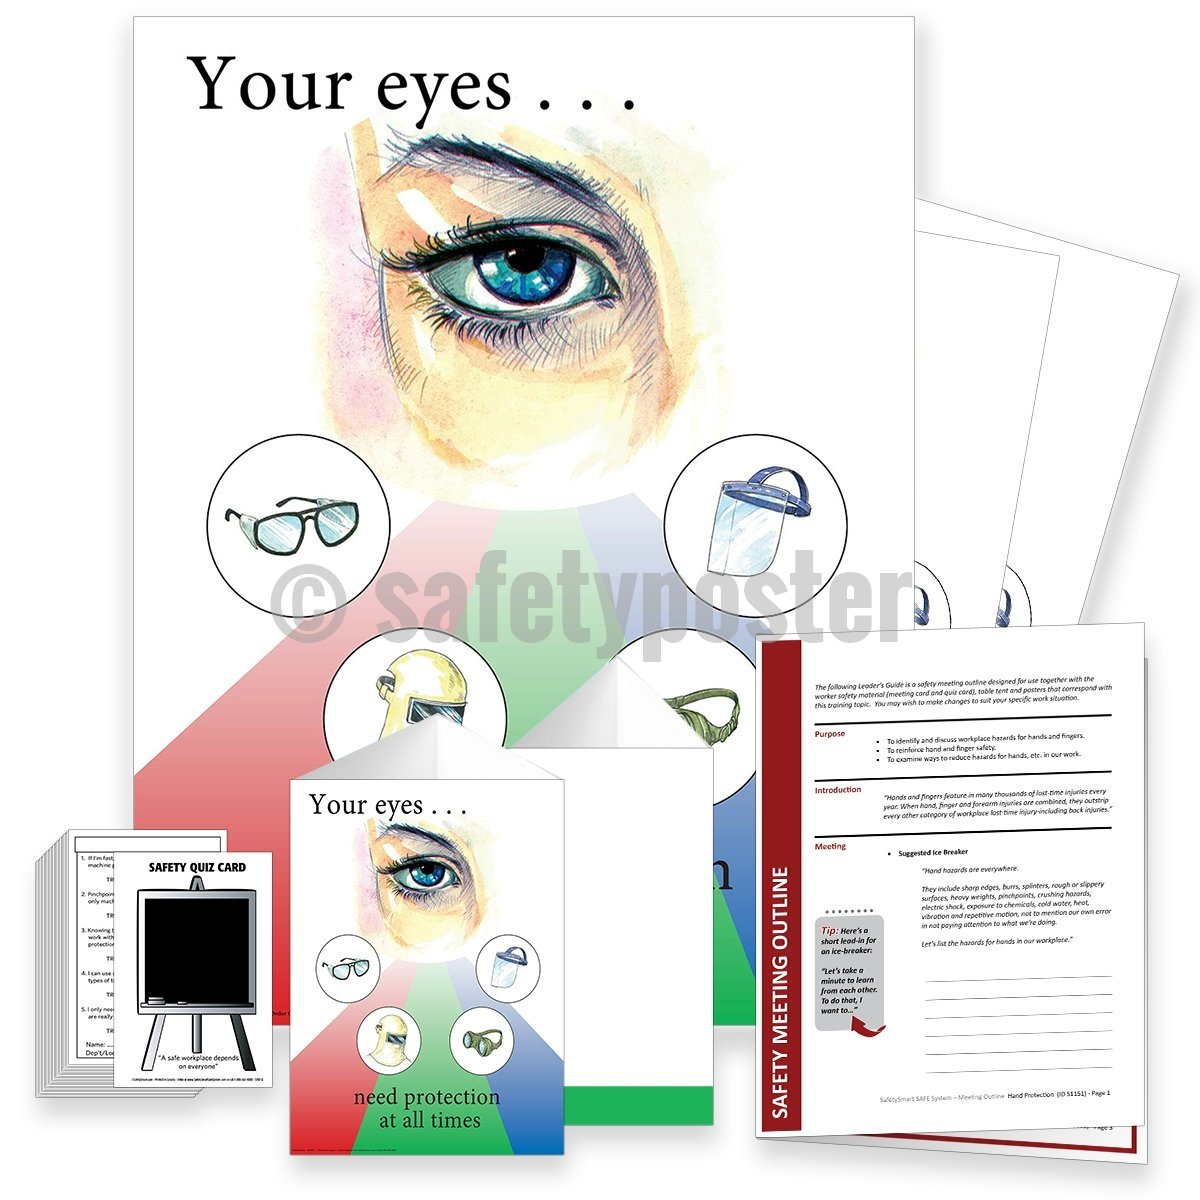 Safety Meeting Kit - Your Eyes Need Protection At All Times Kits